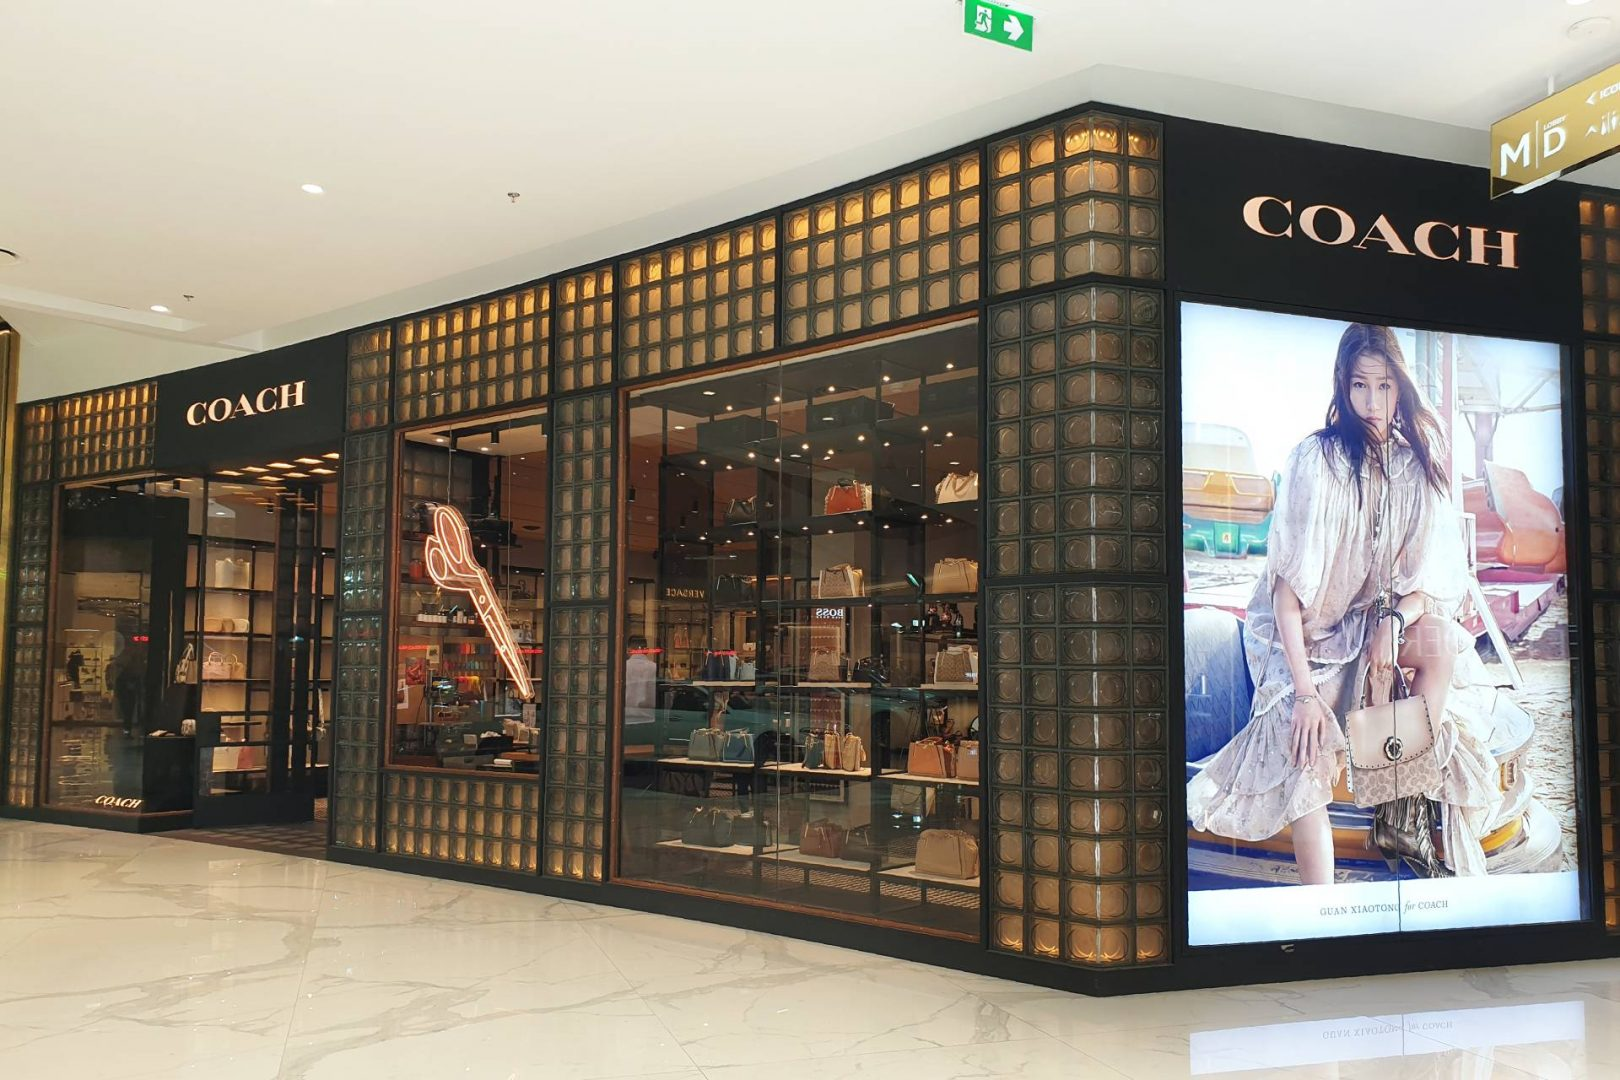 Coach storefront in Thailand. Source: TY Lim / Shutterstock.com